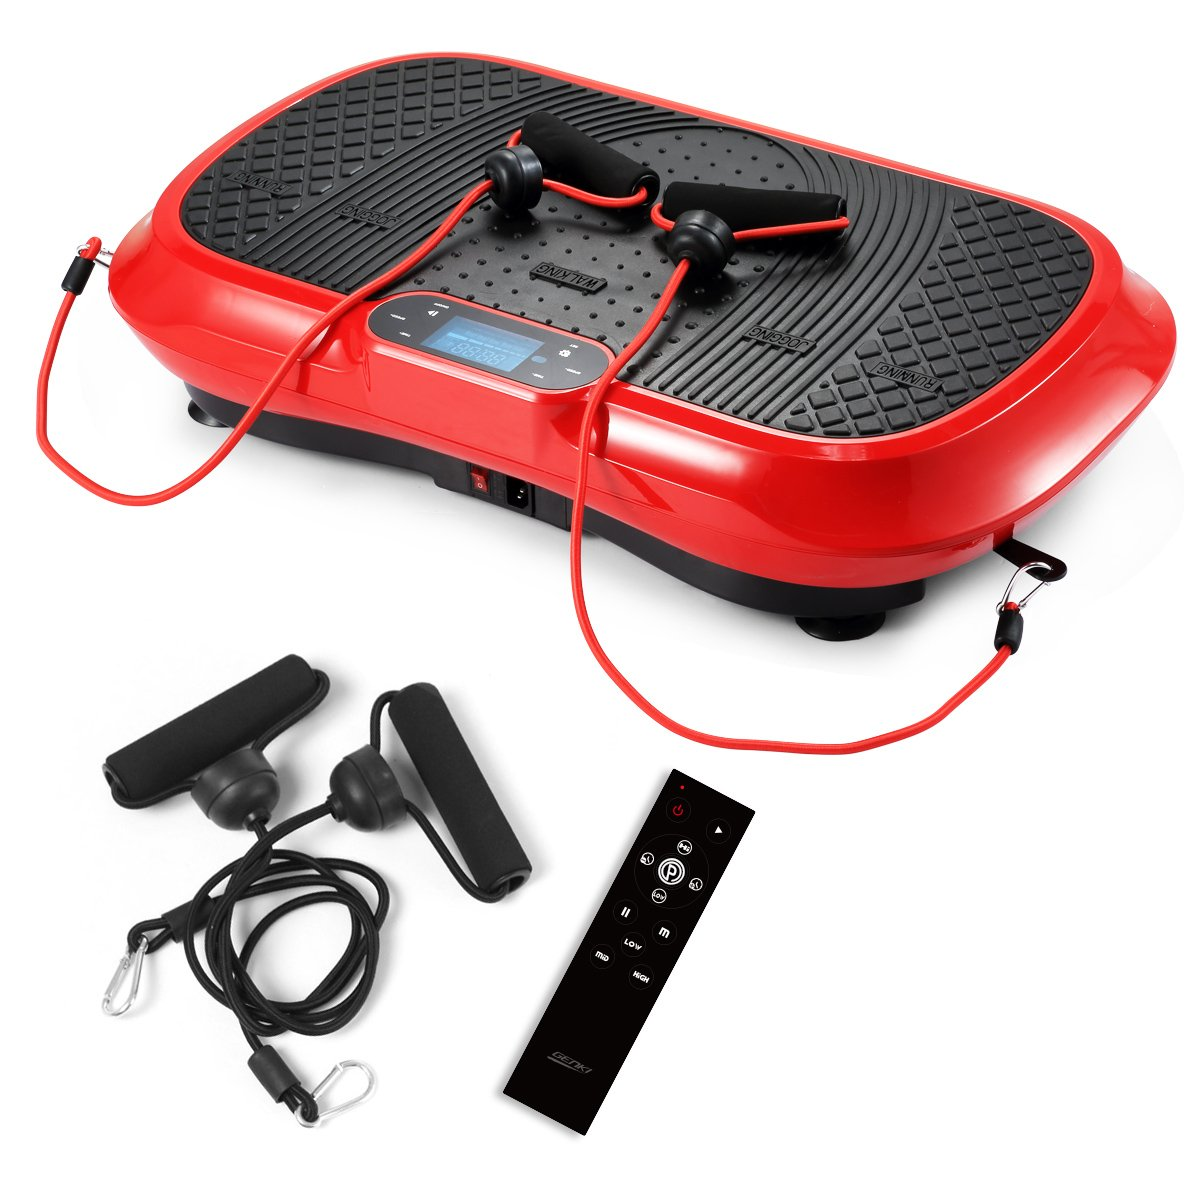 GENKI YD-1010B-R Ultra Slim Vibration Machine Plate Platform Whole Body Shaper Trainer Exercise Red by GENKI (Image #1)